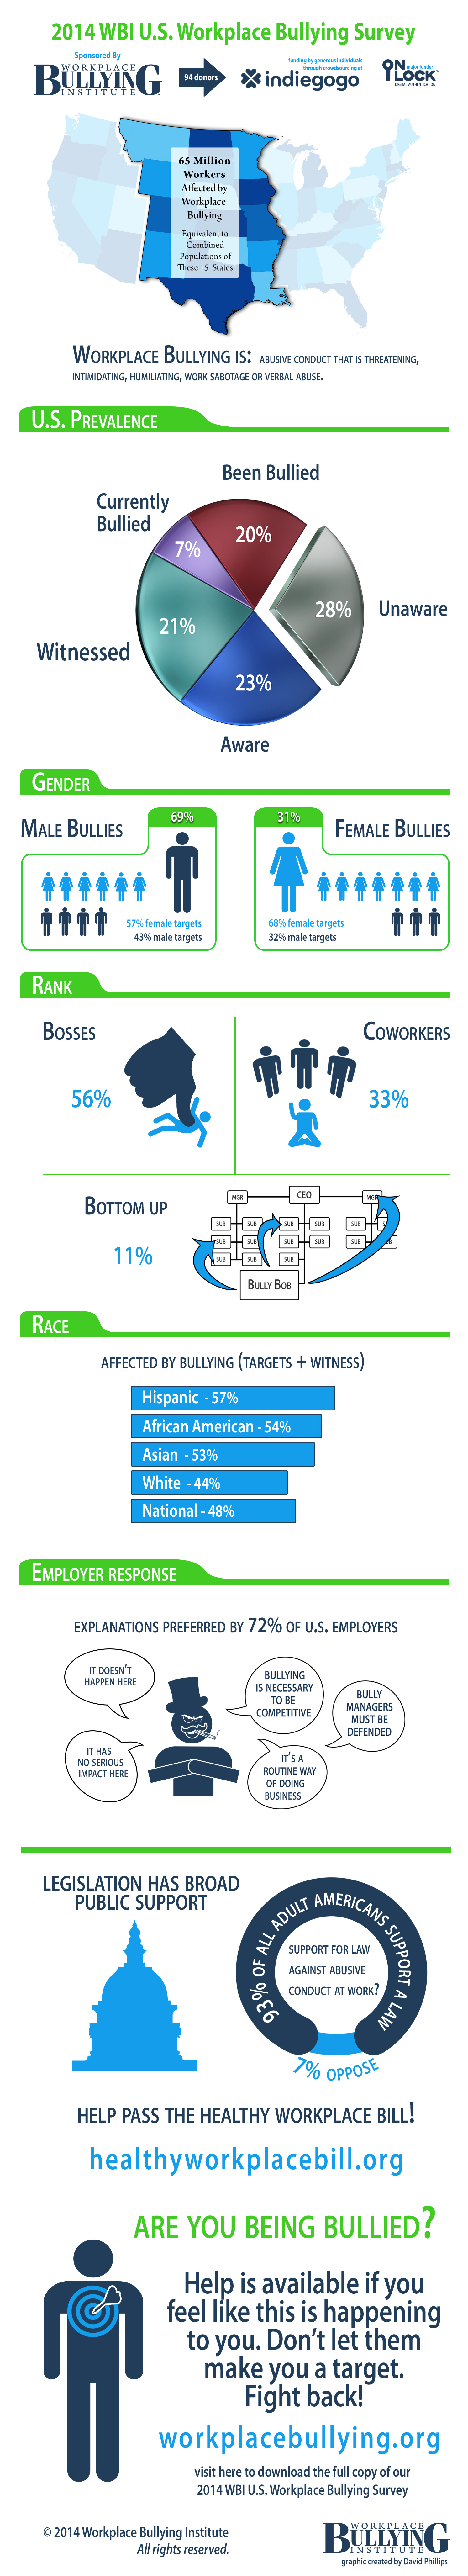 2014 Workplace Bullying Survey-Infographic